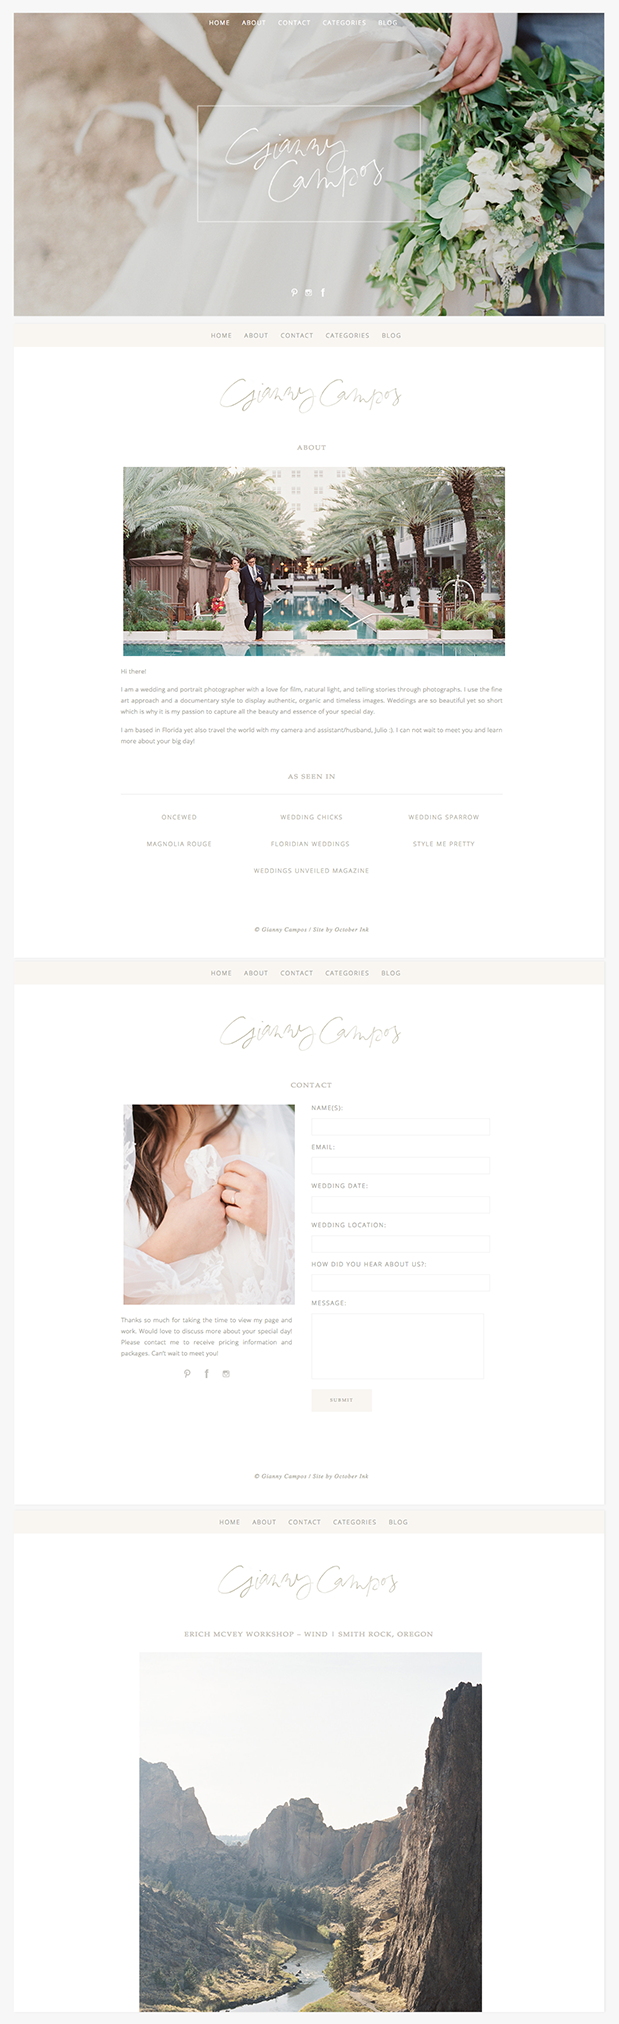 October Ink - Gianny Campos Website Design